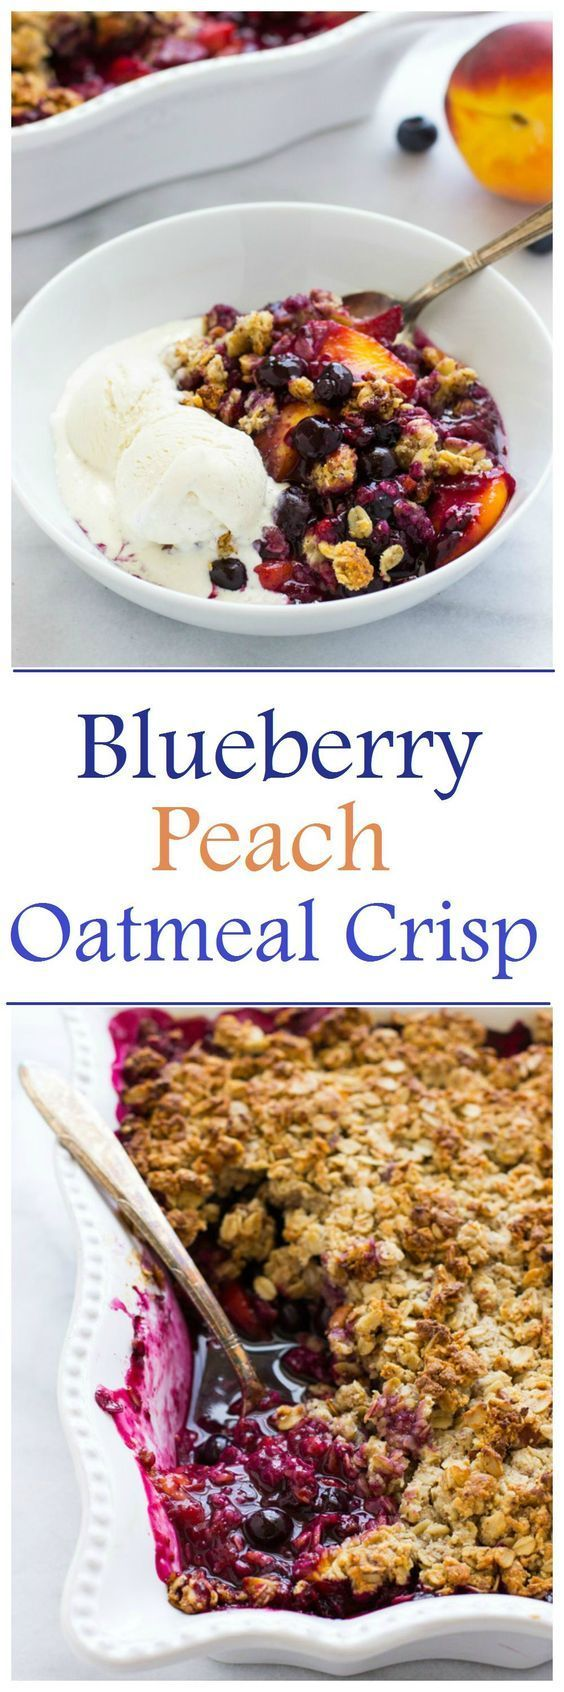 Blueberry Peach Oatmeal Crisp- the perfect summer dessert!Blueberry Peach Oatmeal Crisp- the perfect summer dessert!